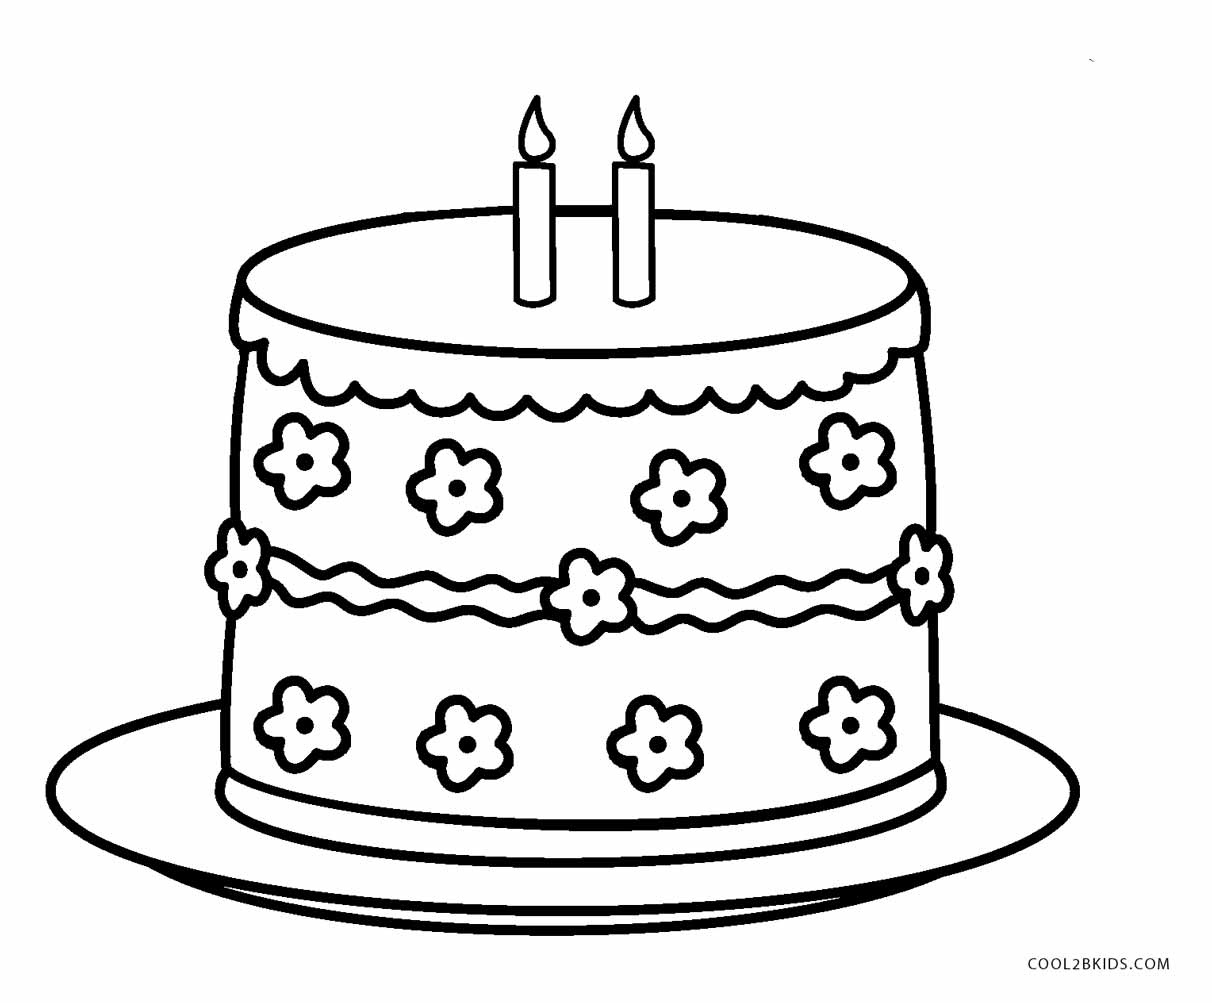 Free Printable Birthday Cake Coloring Pages For Kids | Cool2Bkids - Free Printable Birthday Cake